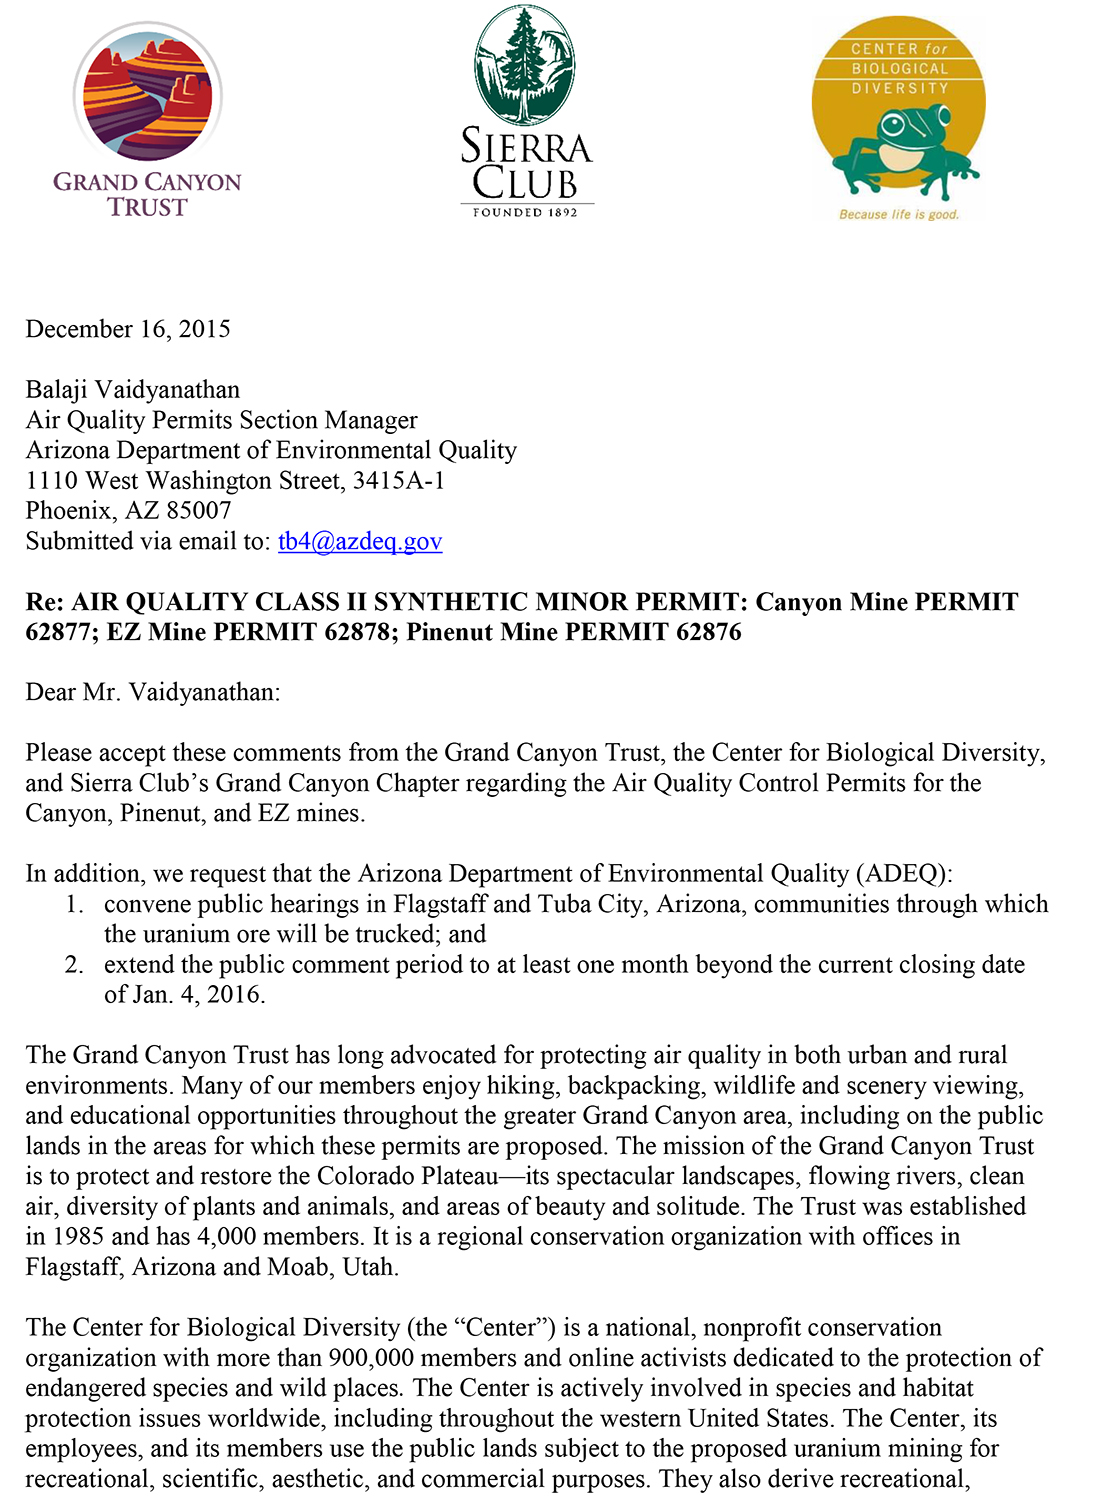 Comments on air quality permit renewals